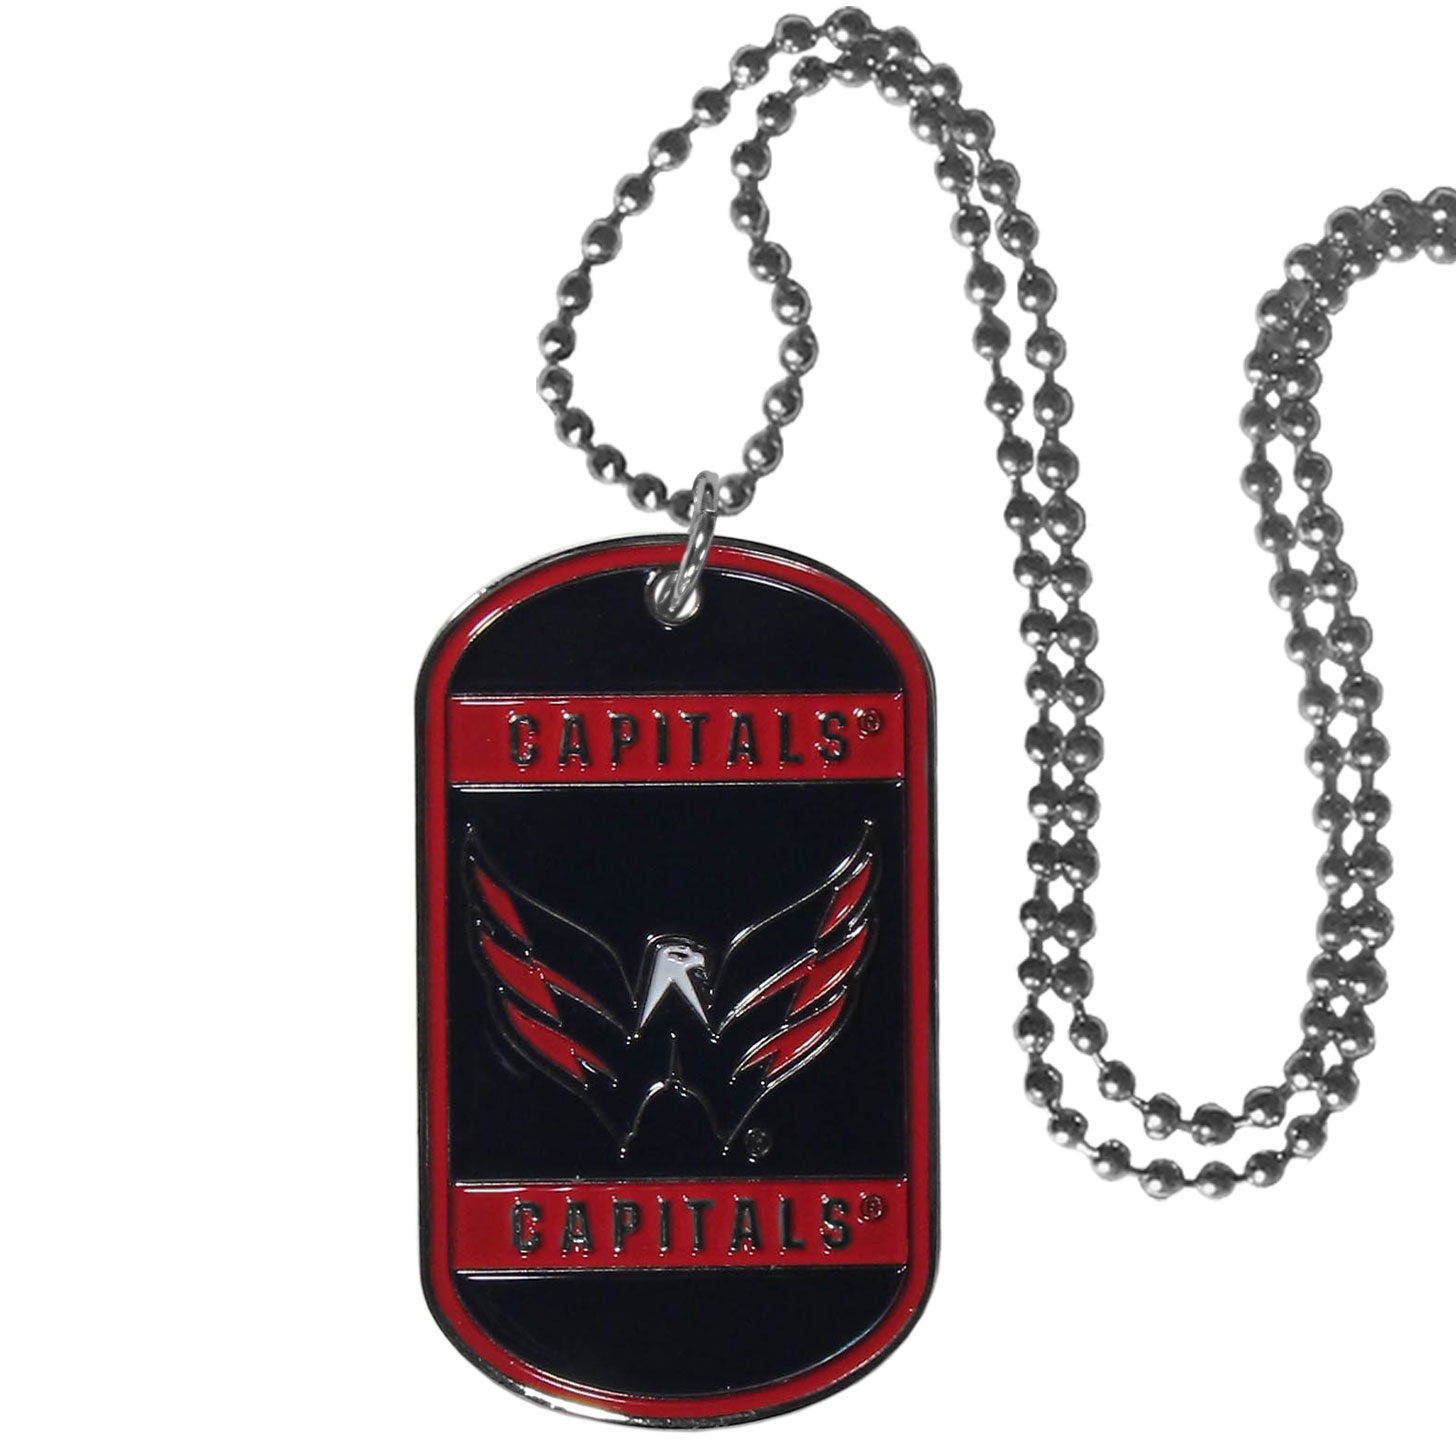 Washington Capitals® Tag Necklace - Expertly crafted Washington Capitals® tag necklaces featuring fine detailing and a hand enameled finish with chrome accents. 26 inch chain.